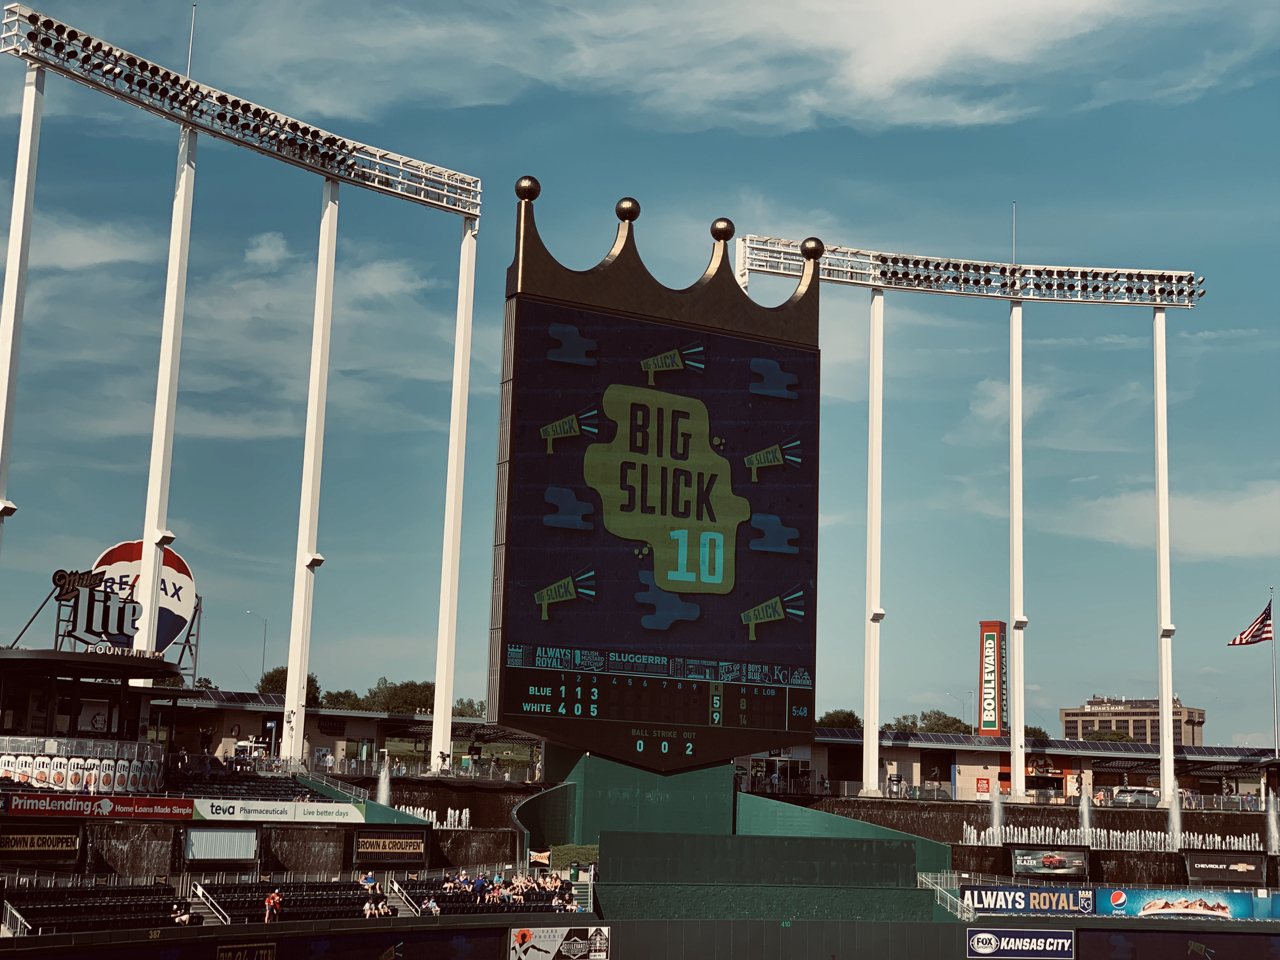 Big Slick 10 at Kauffman Stadium in Kansas City